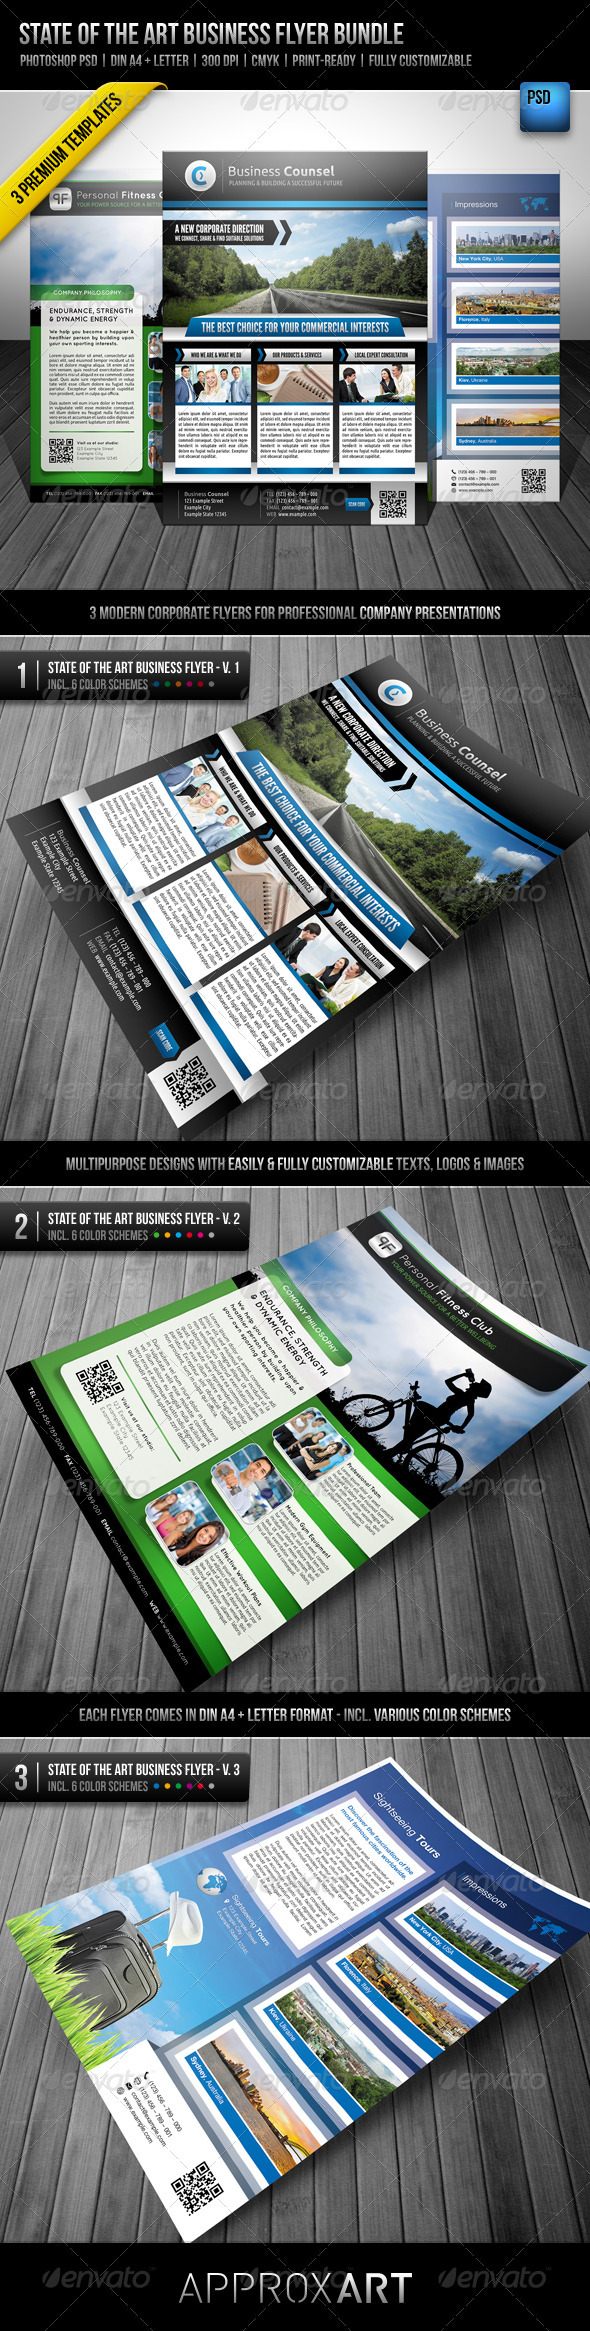 State of the Art Business Flyer Bundle - Corporate Flyers